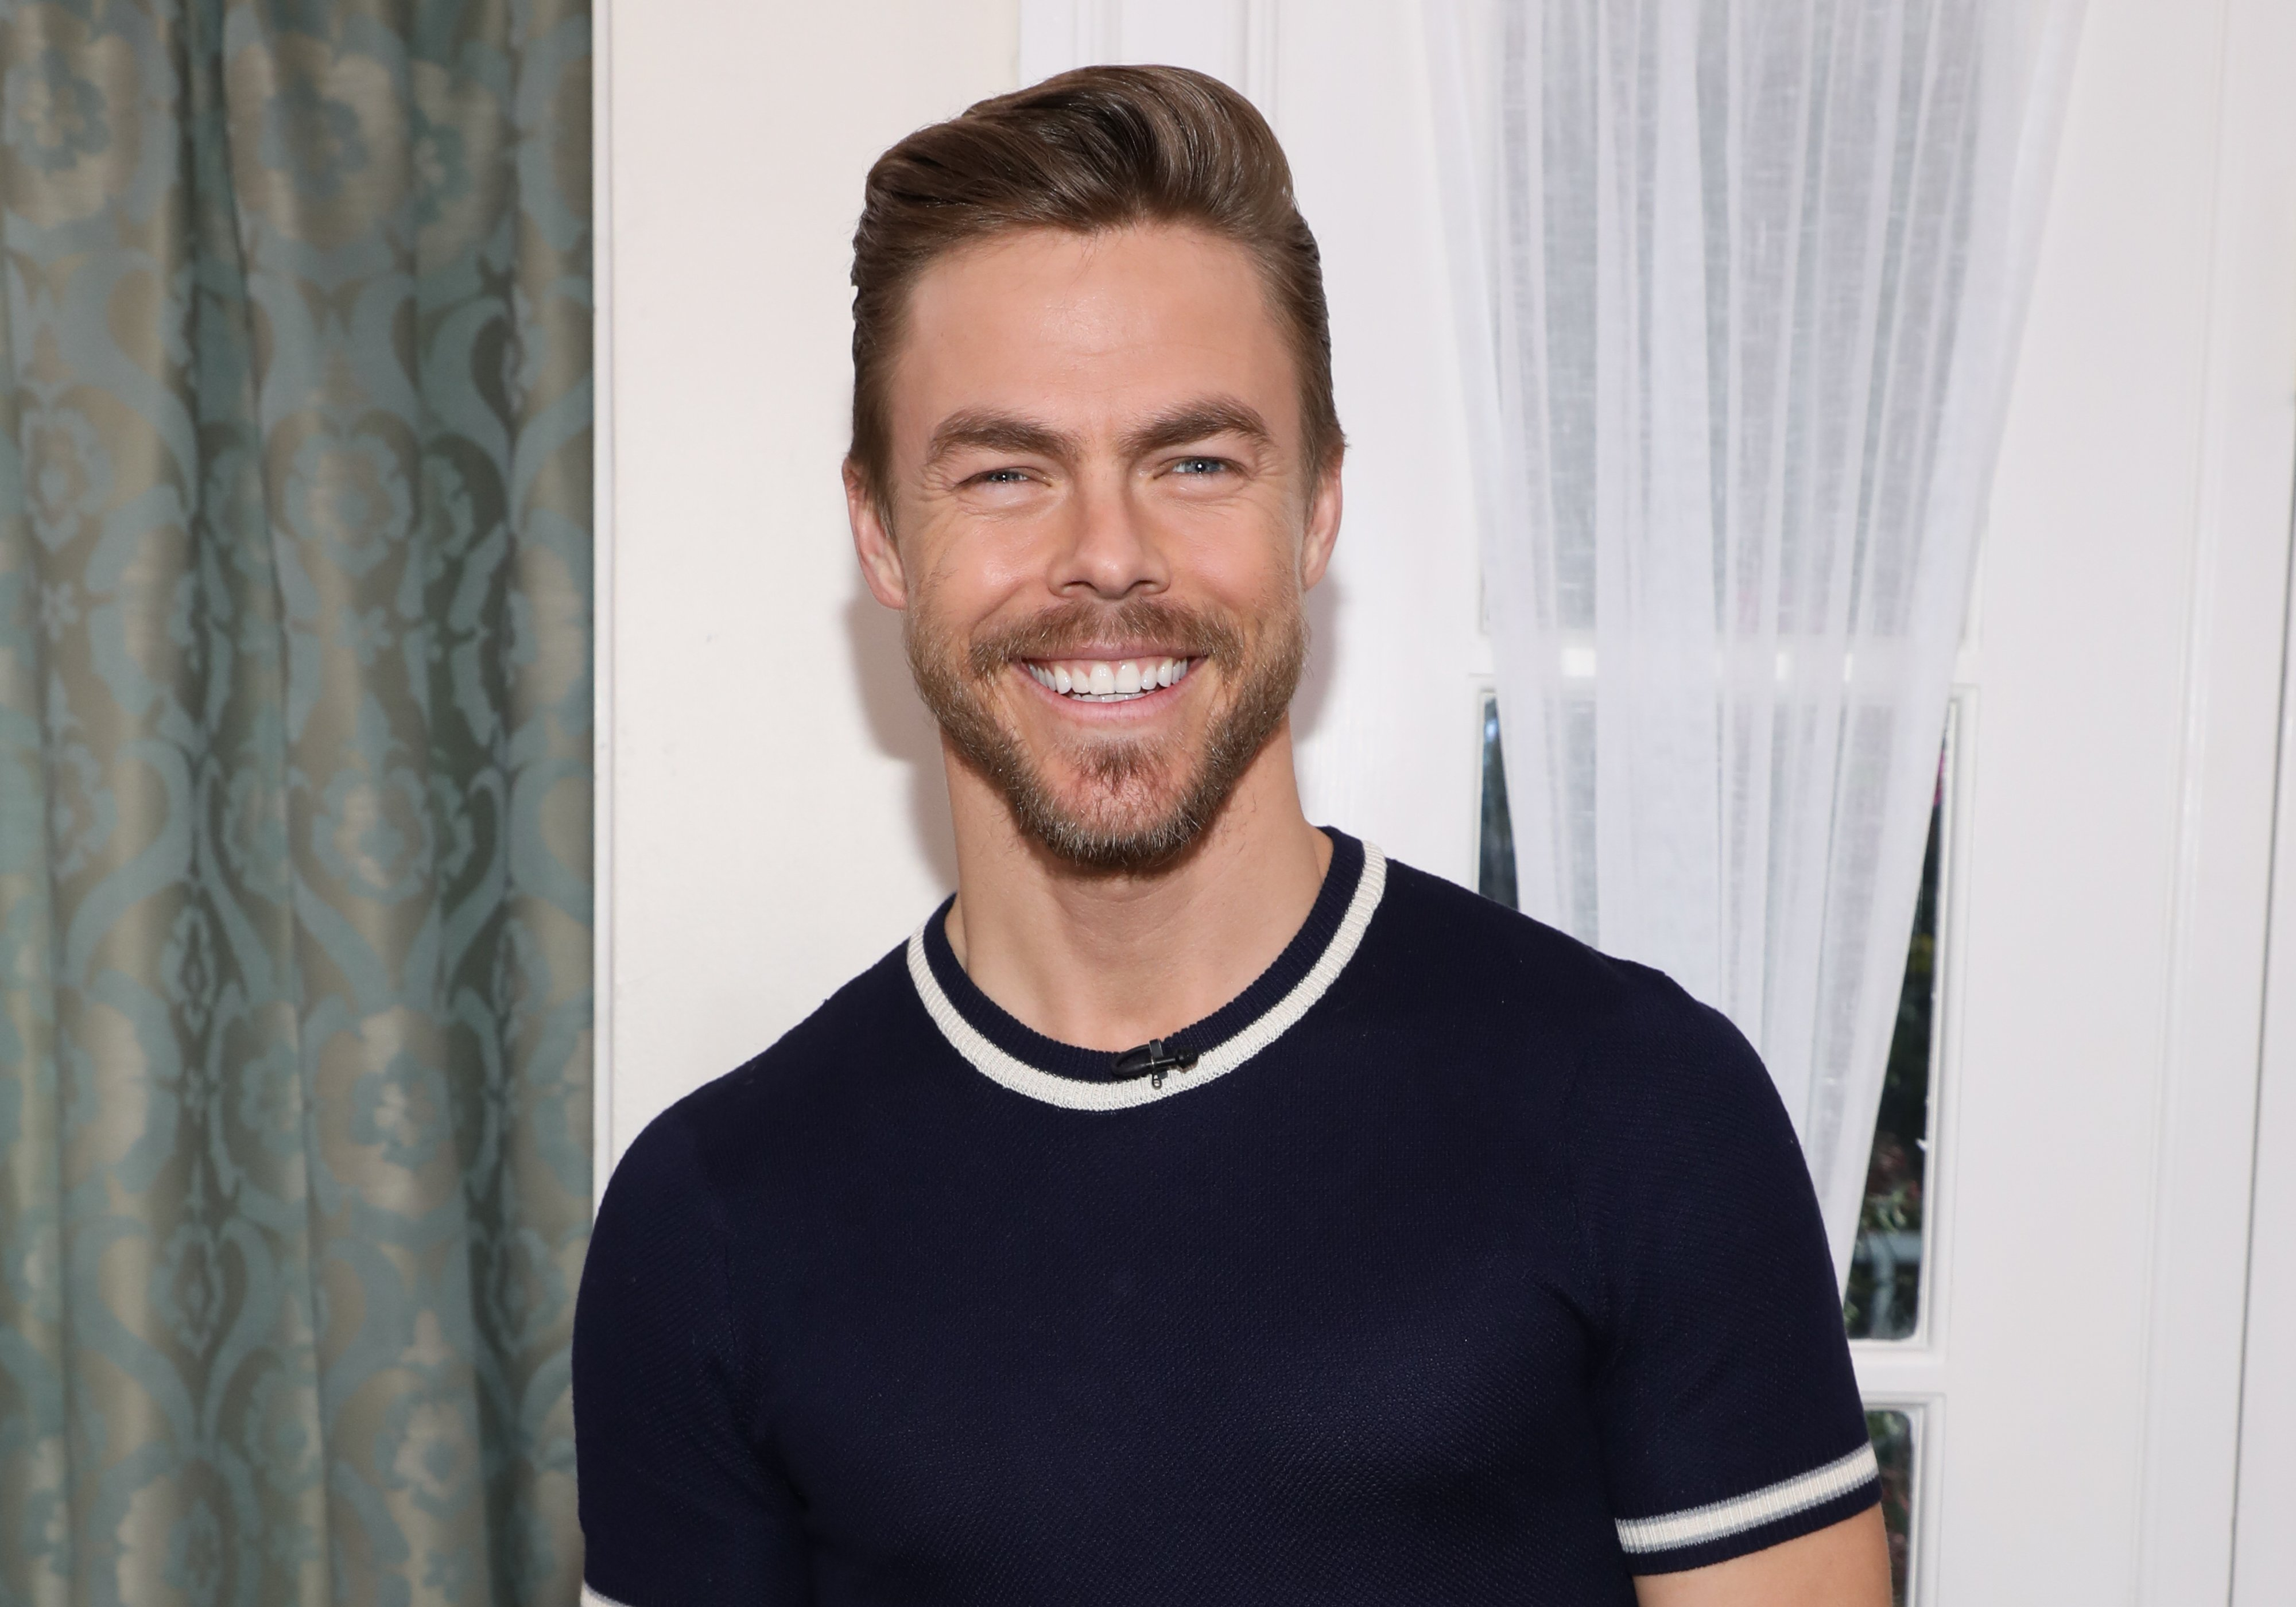 """Derek Hough visits Hallmark's """"Home & Family"""" at Universal Studios Hollywood on March 08, 2019 